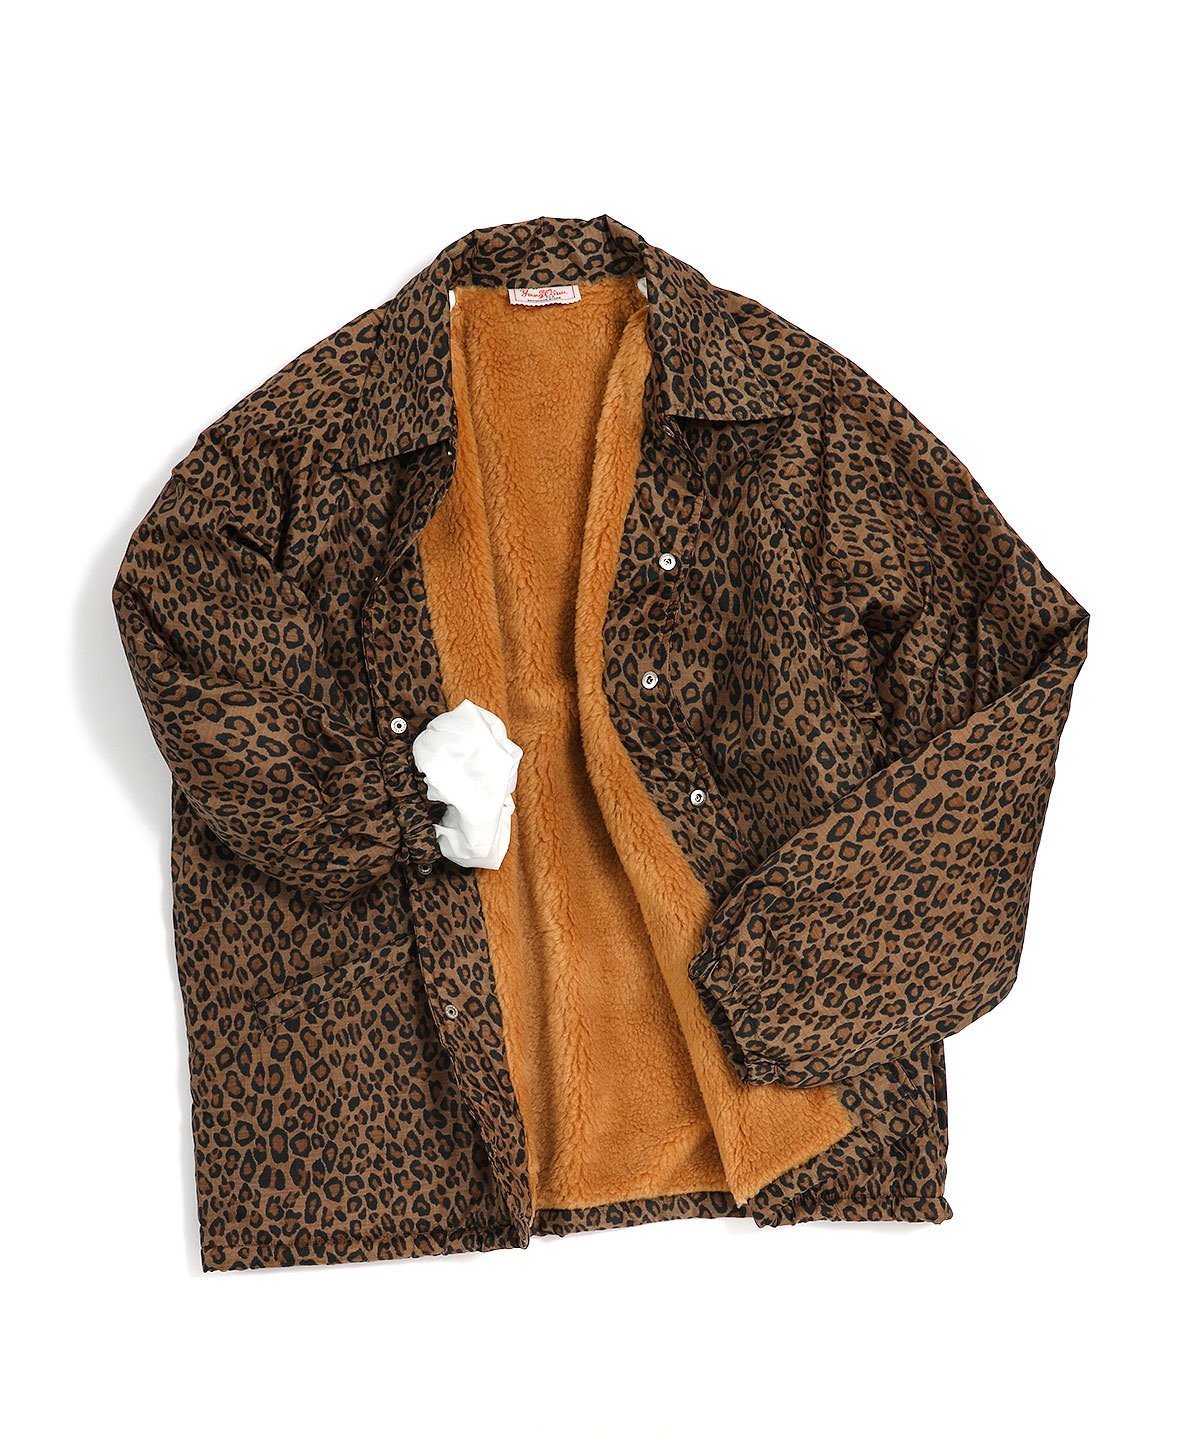 LEOPARD COACH JACKET